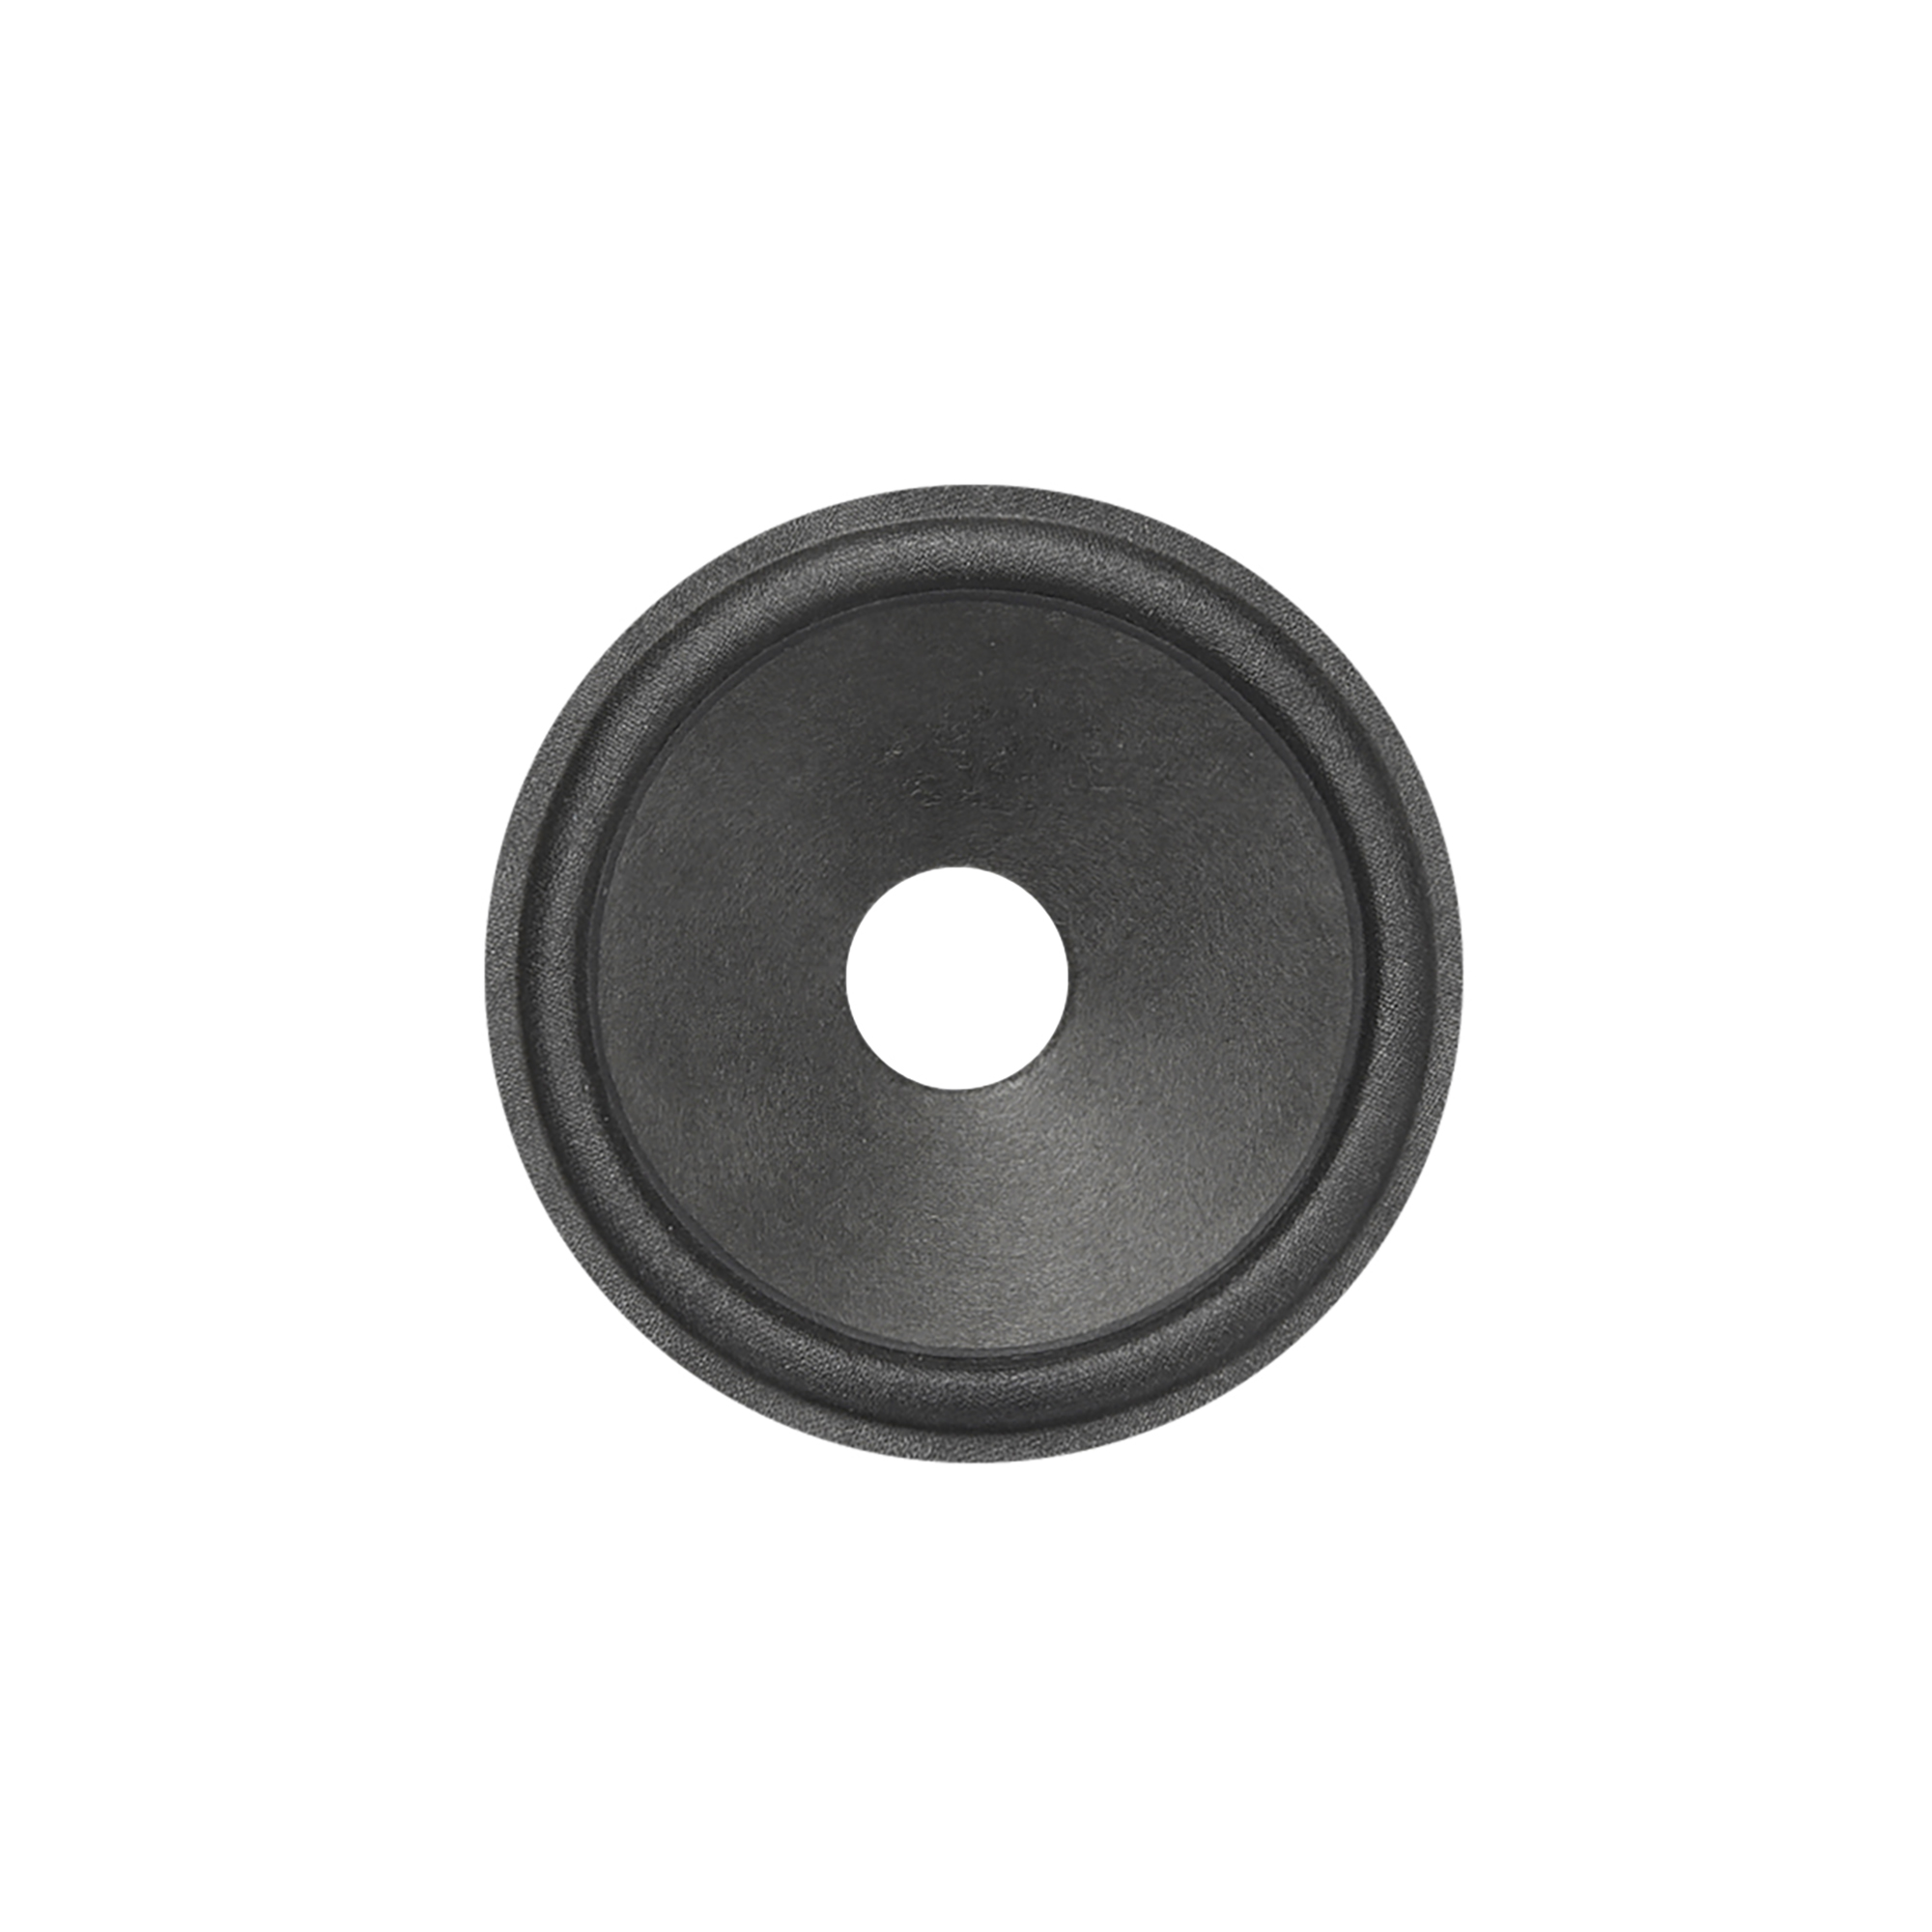 uxcell 6.5 inches Paper Speaker Cone Subwoofer Cones Drum Paper 1 inches Voice Coil Diameter with Rubber Surround Glossy Black